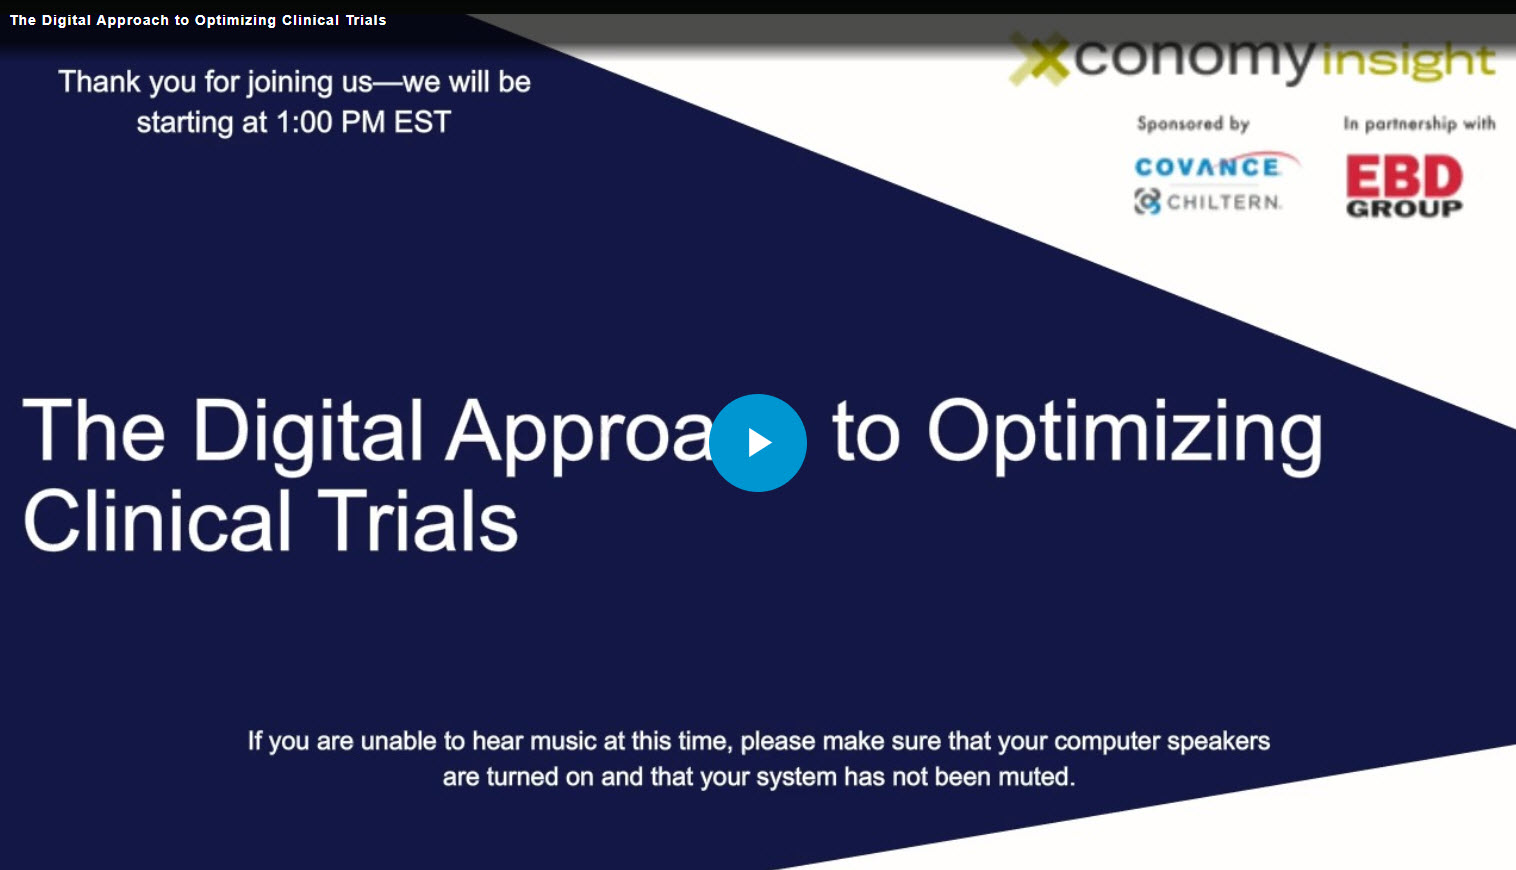 The Digital Approach to Optimizing Clinical Trials